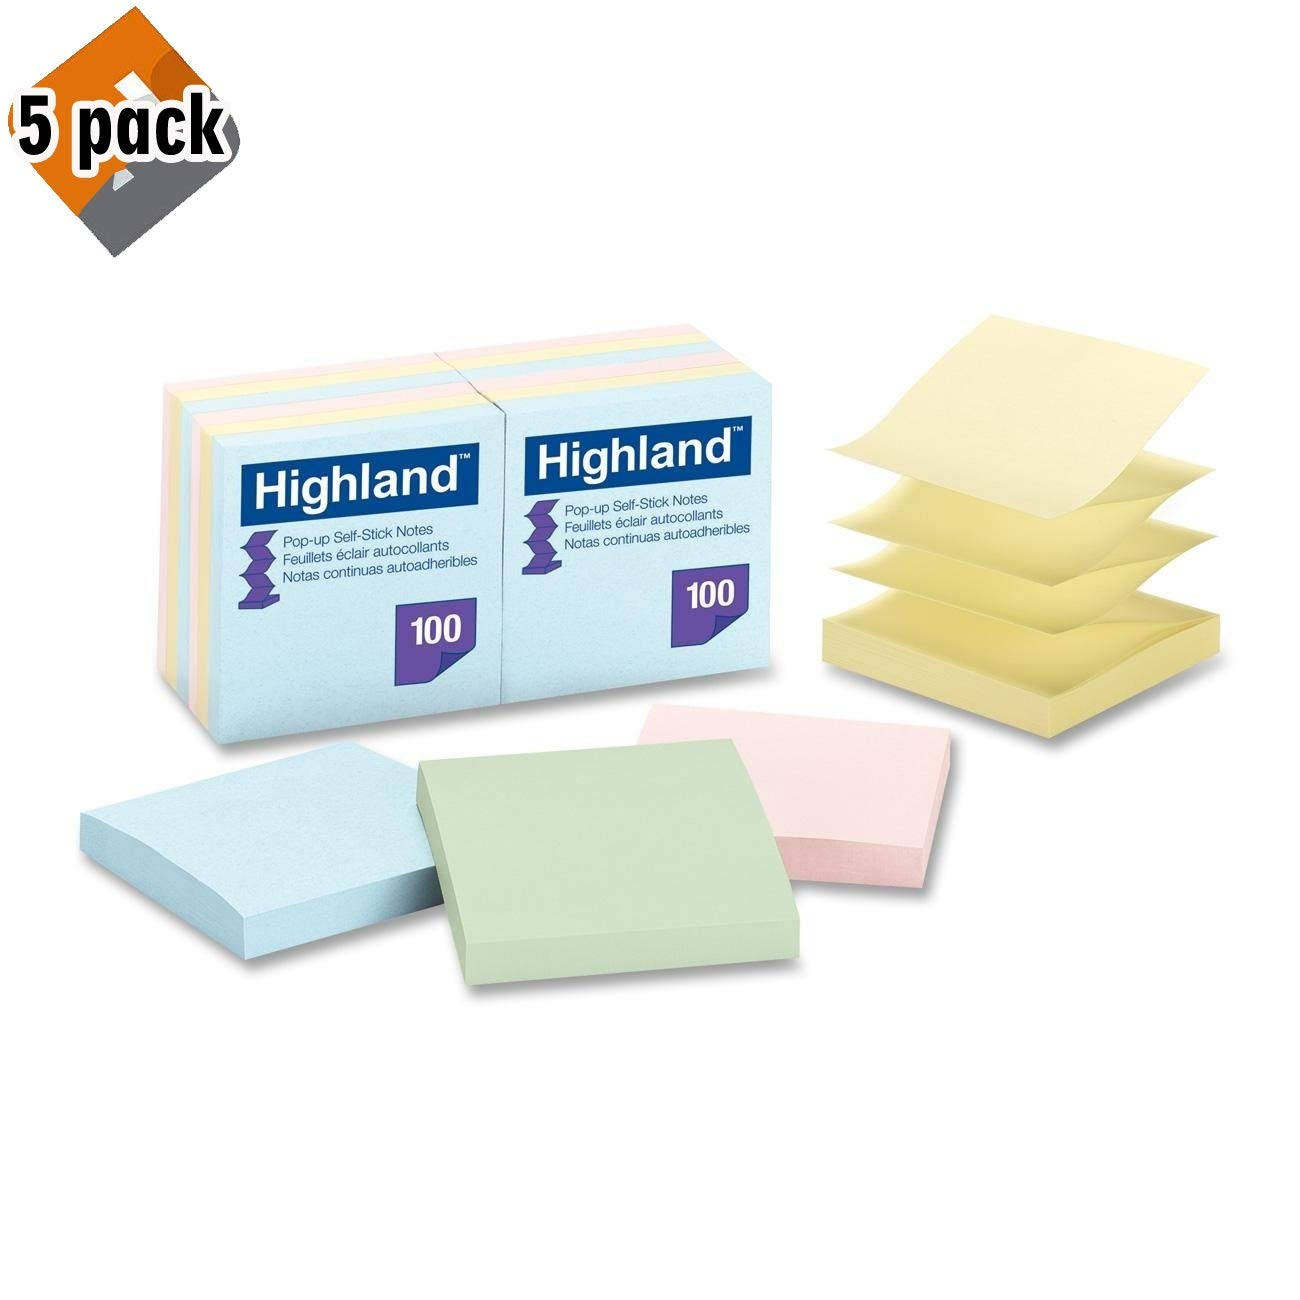 Highland 6549-PUA Pop-up Notes, 3 x 3 Inches, Assorted Pastel Colors, 12 Pack - Pack of 5